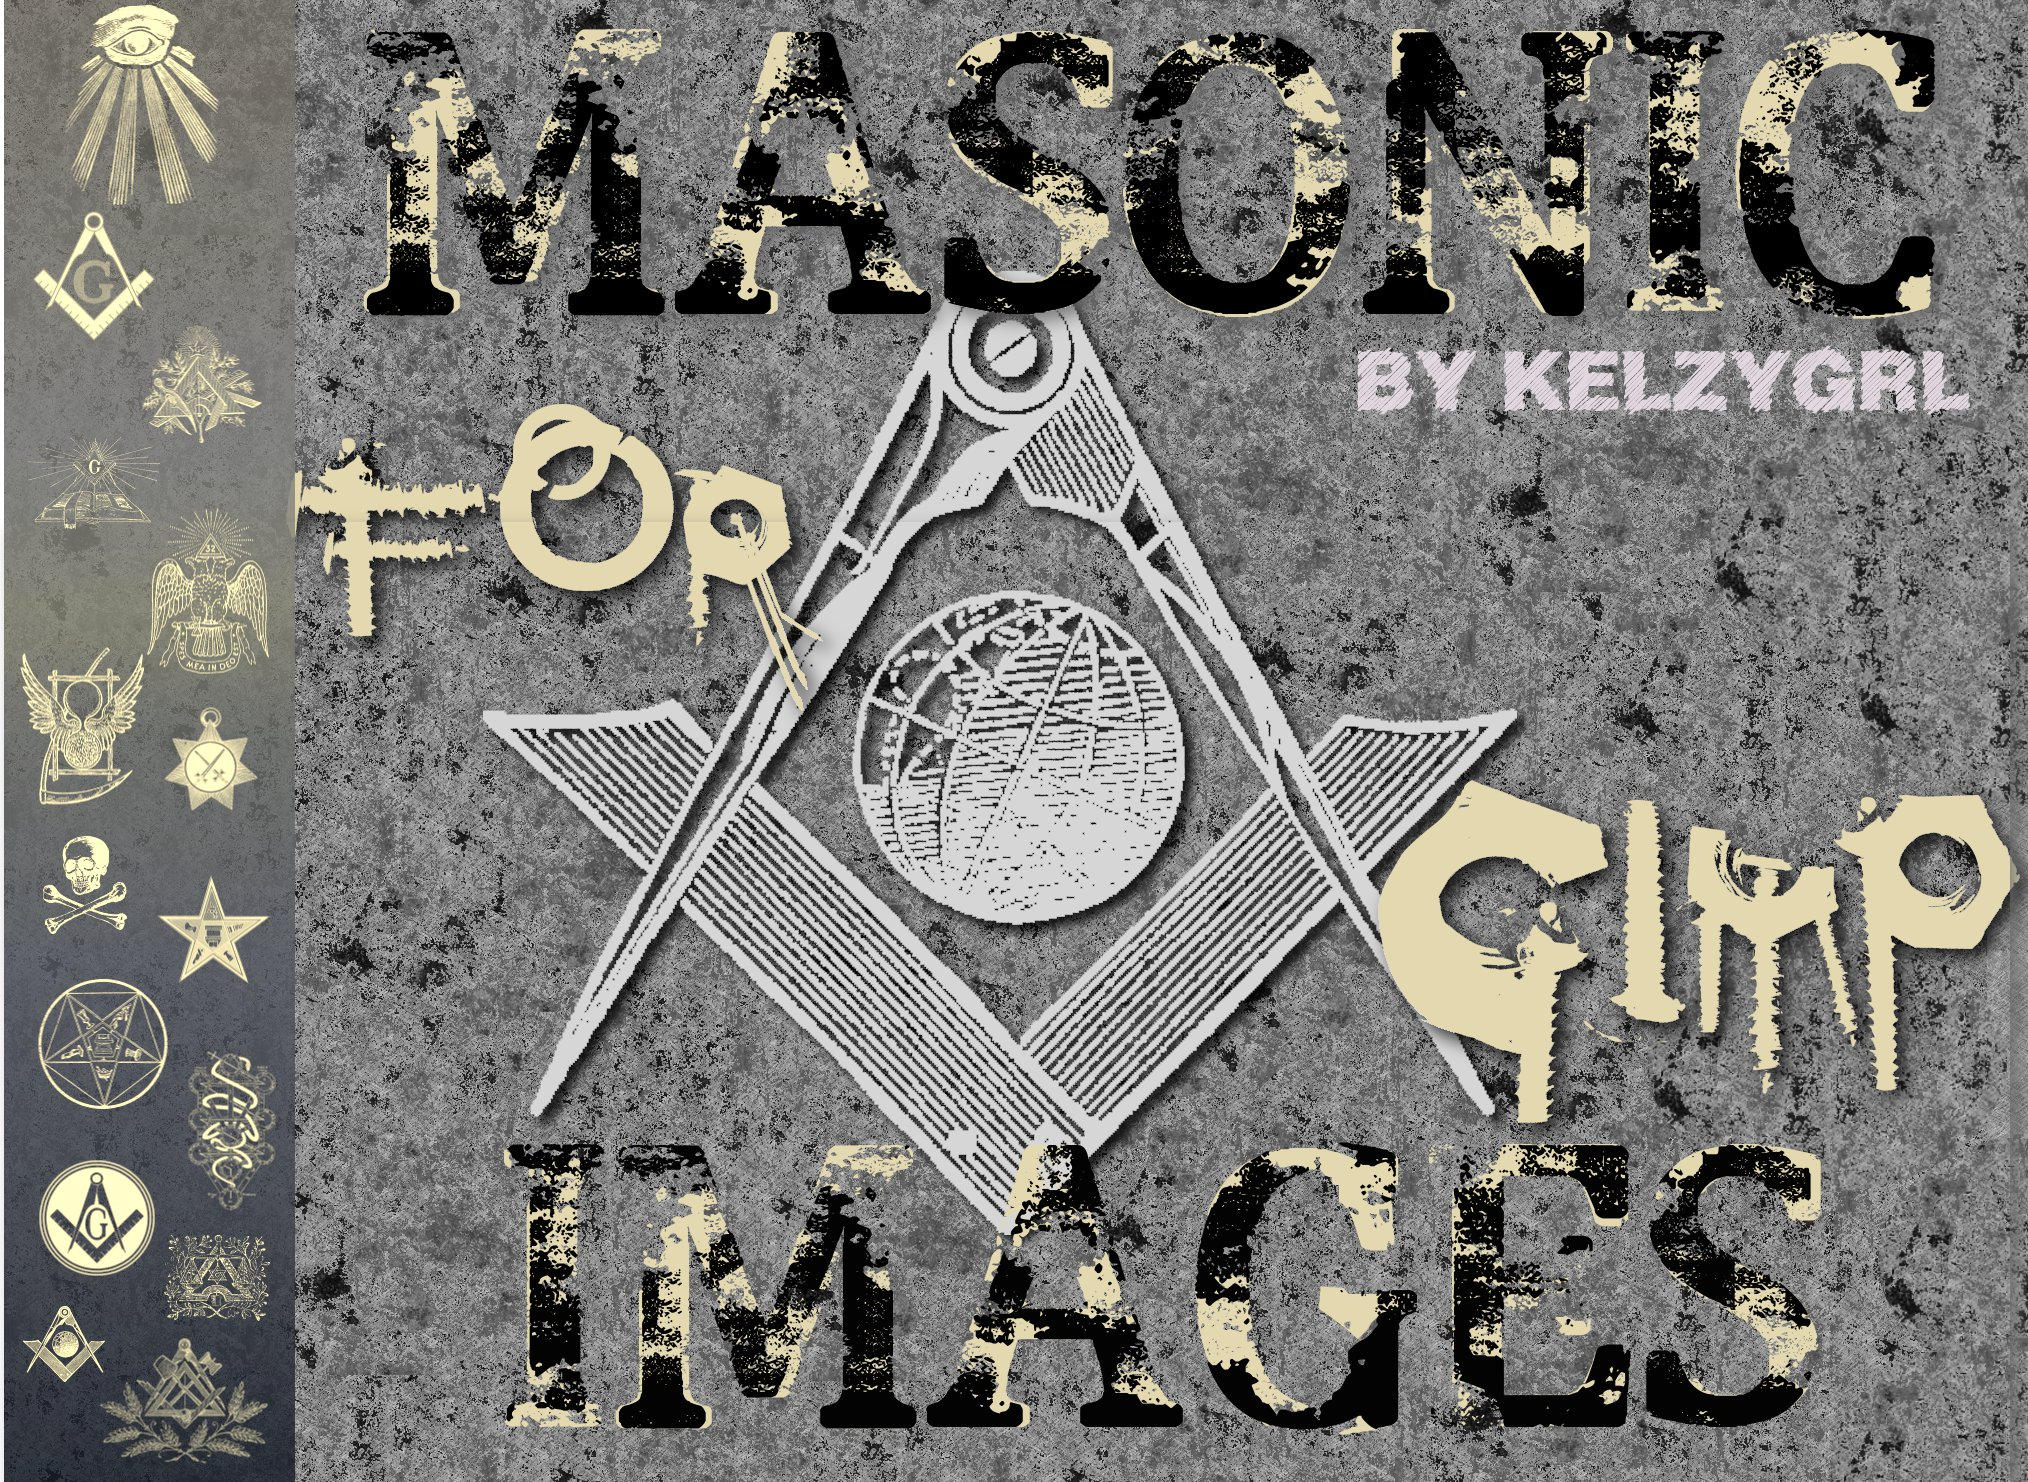 Masonic Images by kelzygrl